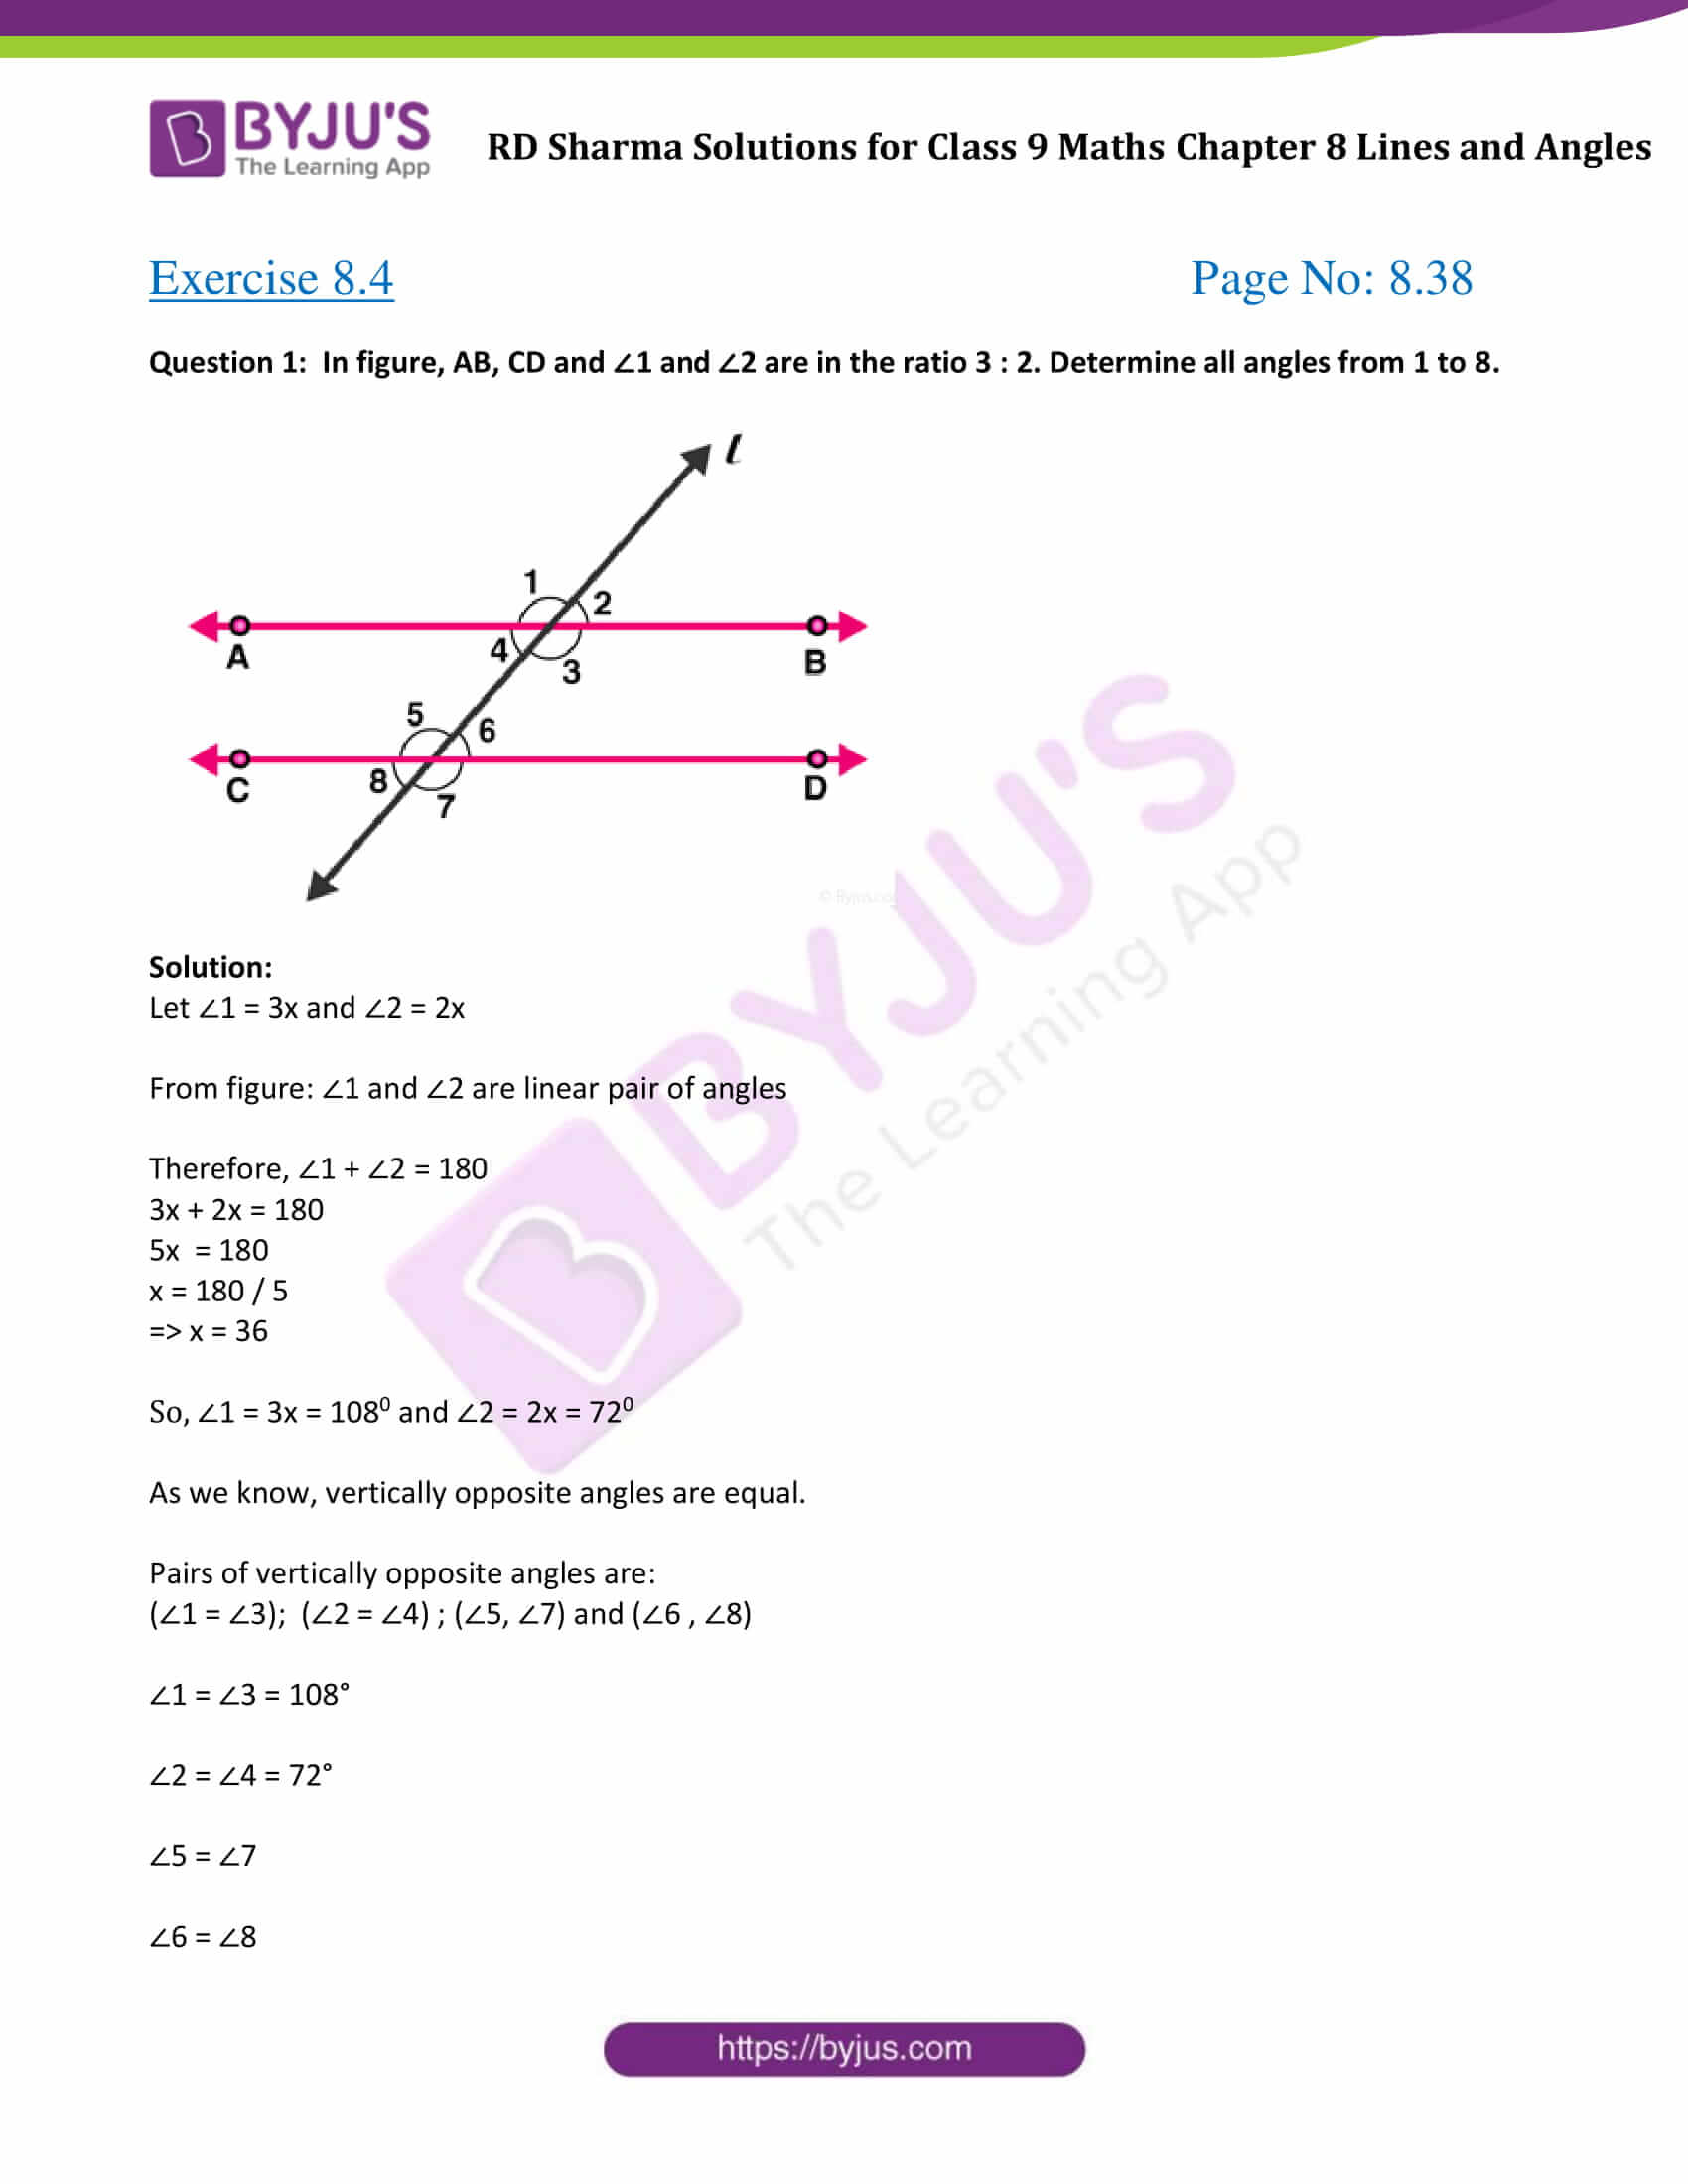 RD Sharma Solution class 9 Maths Chapter 8 Lines and Angles 16